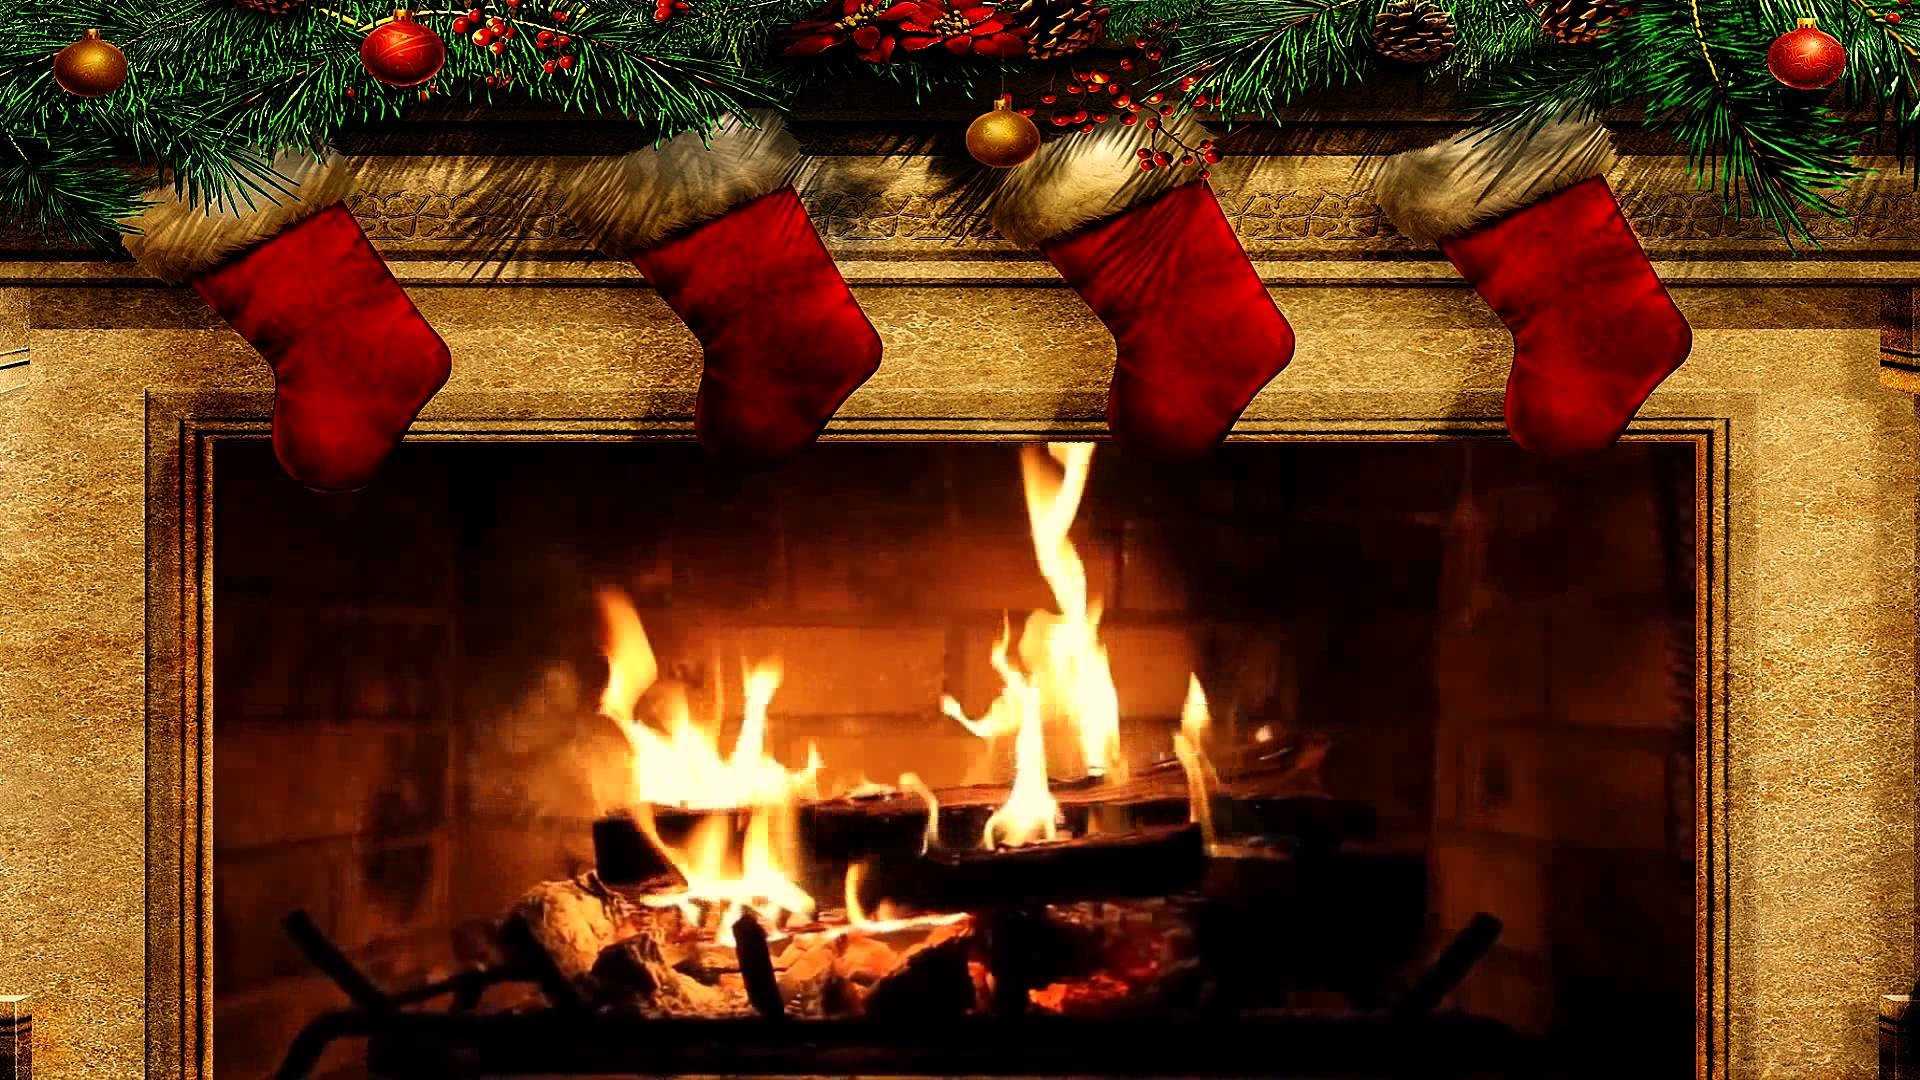 Fireplace Christmas Background  Christmas Fireplace Wallpaper 57 images